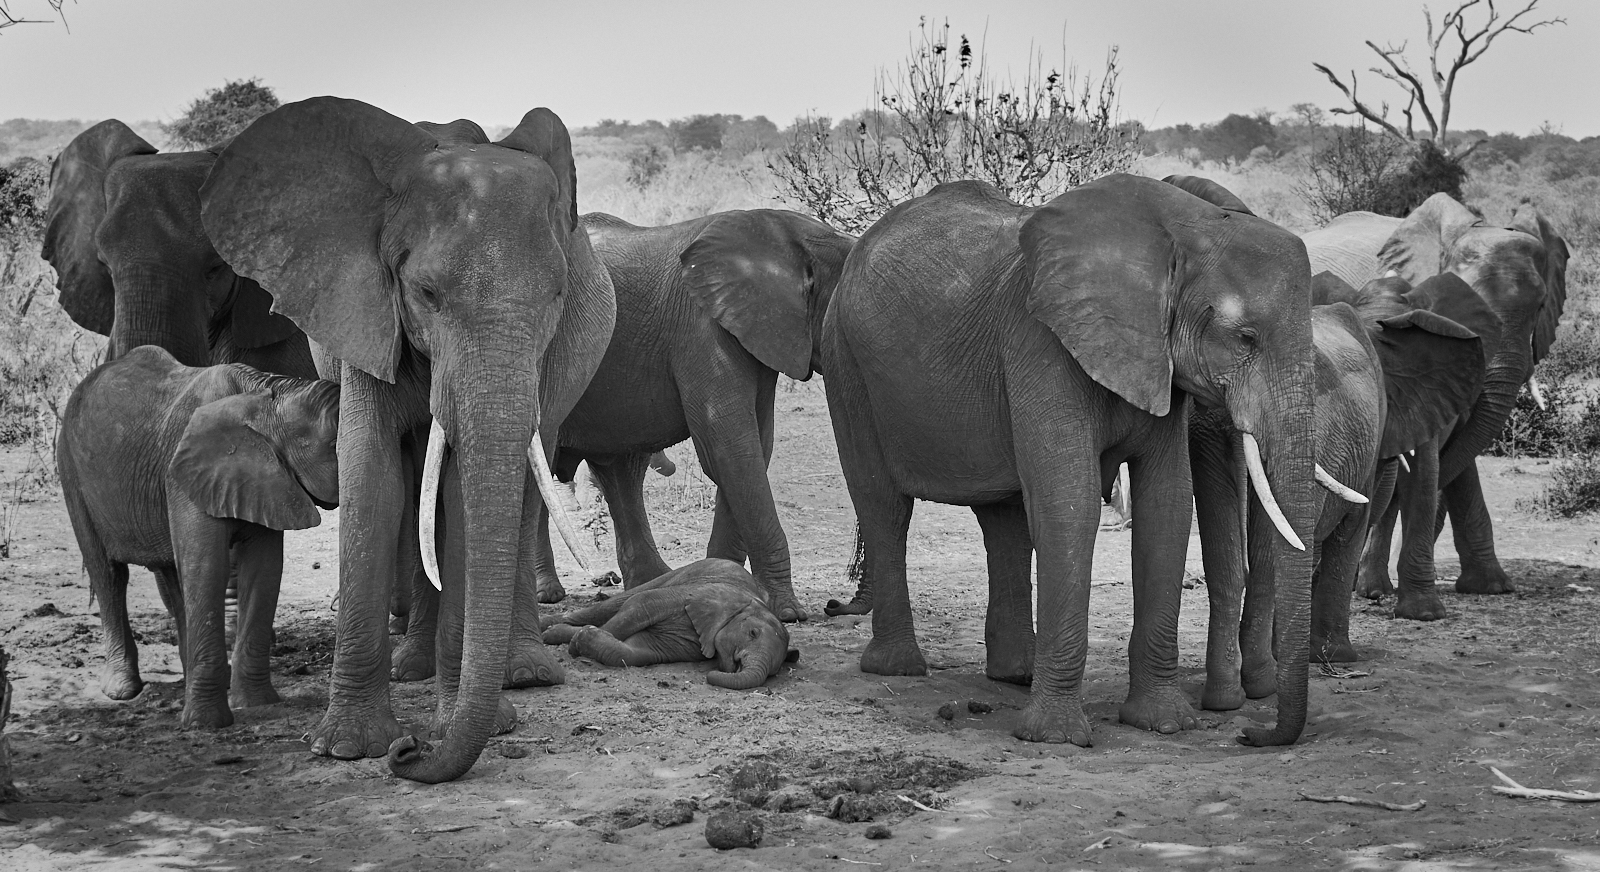 Protecting elephants 1600x1200 sRGB.jpg